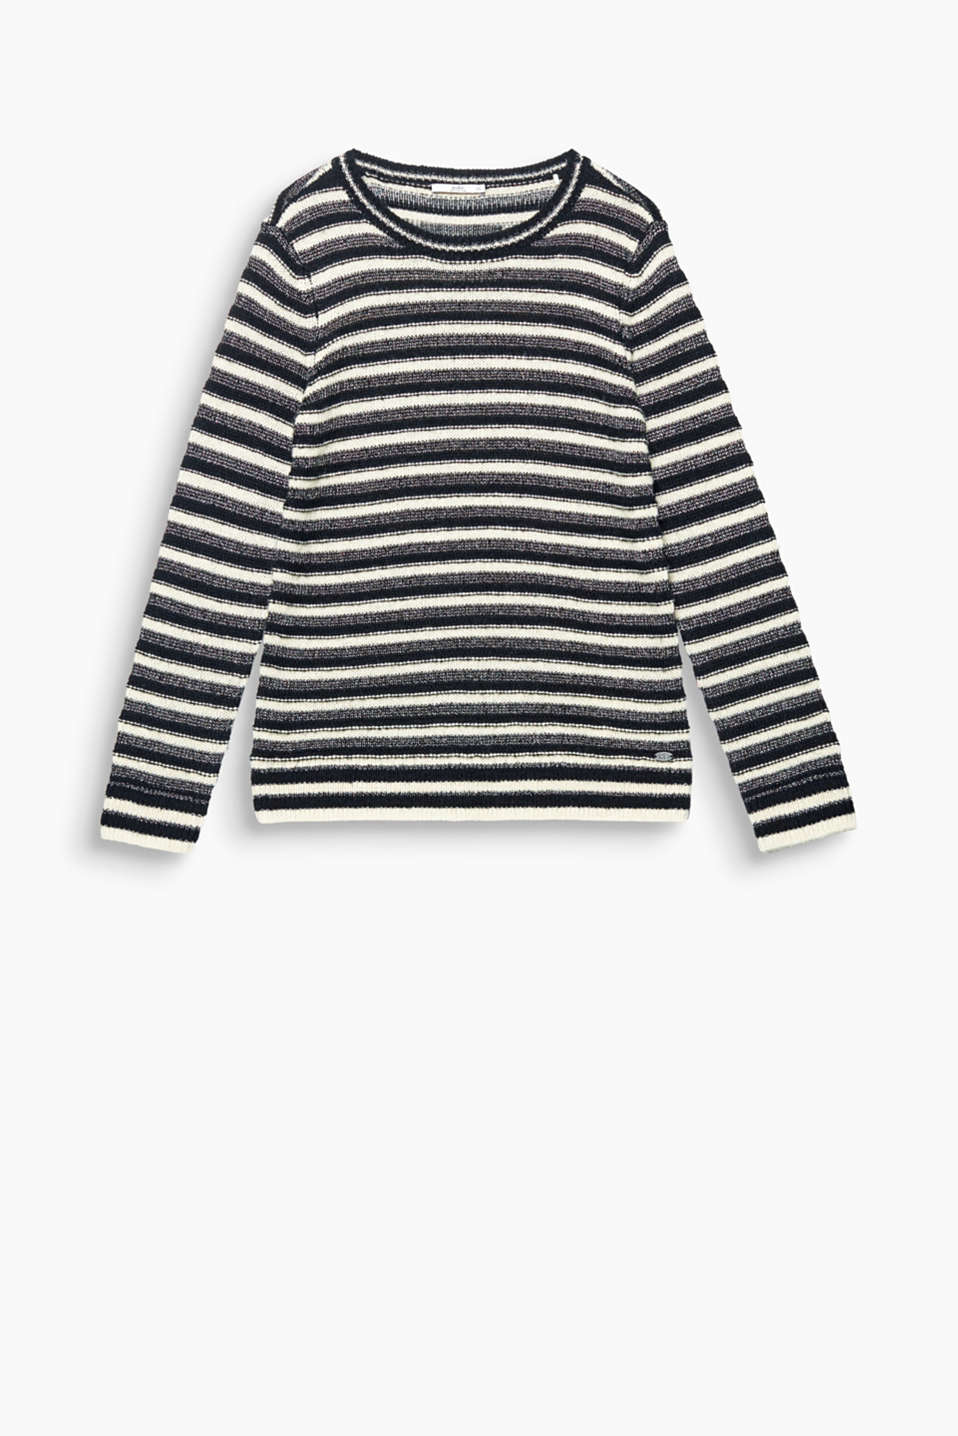 Textured, melange and glittery, this casual jumper proves our striped styles look oh so fresh!